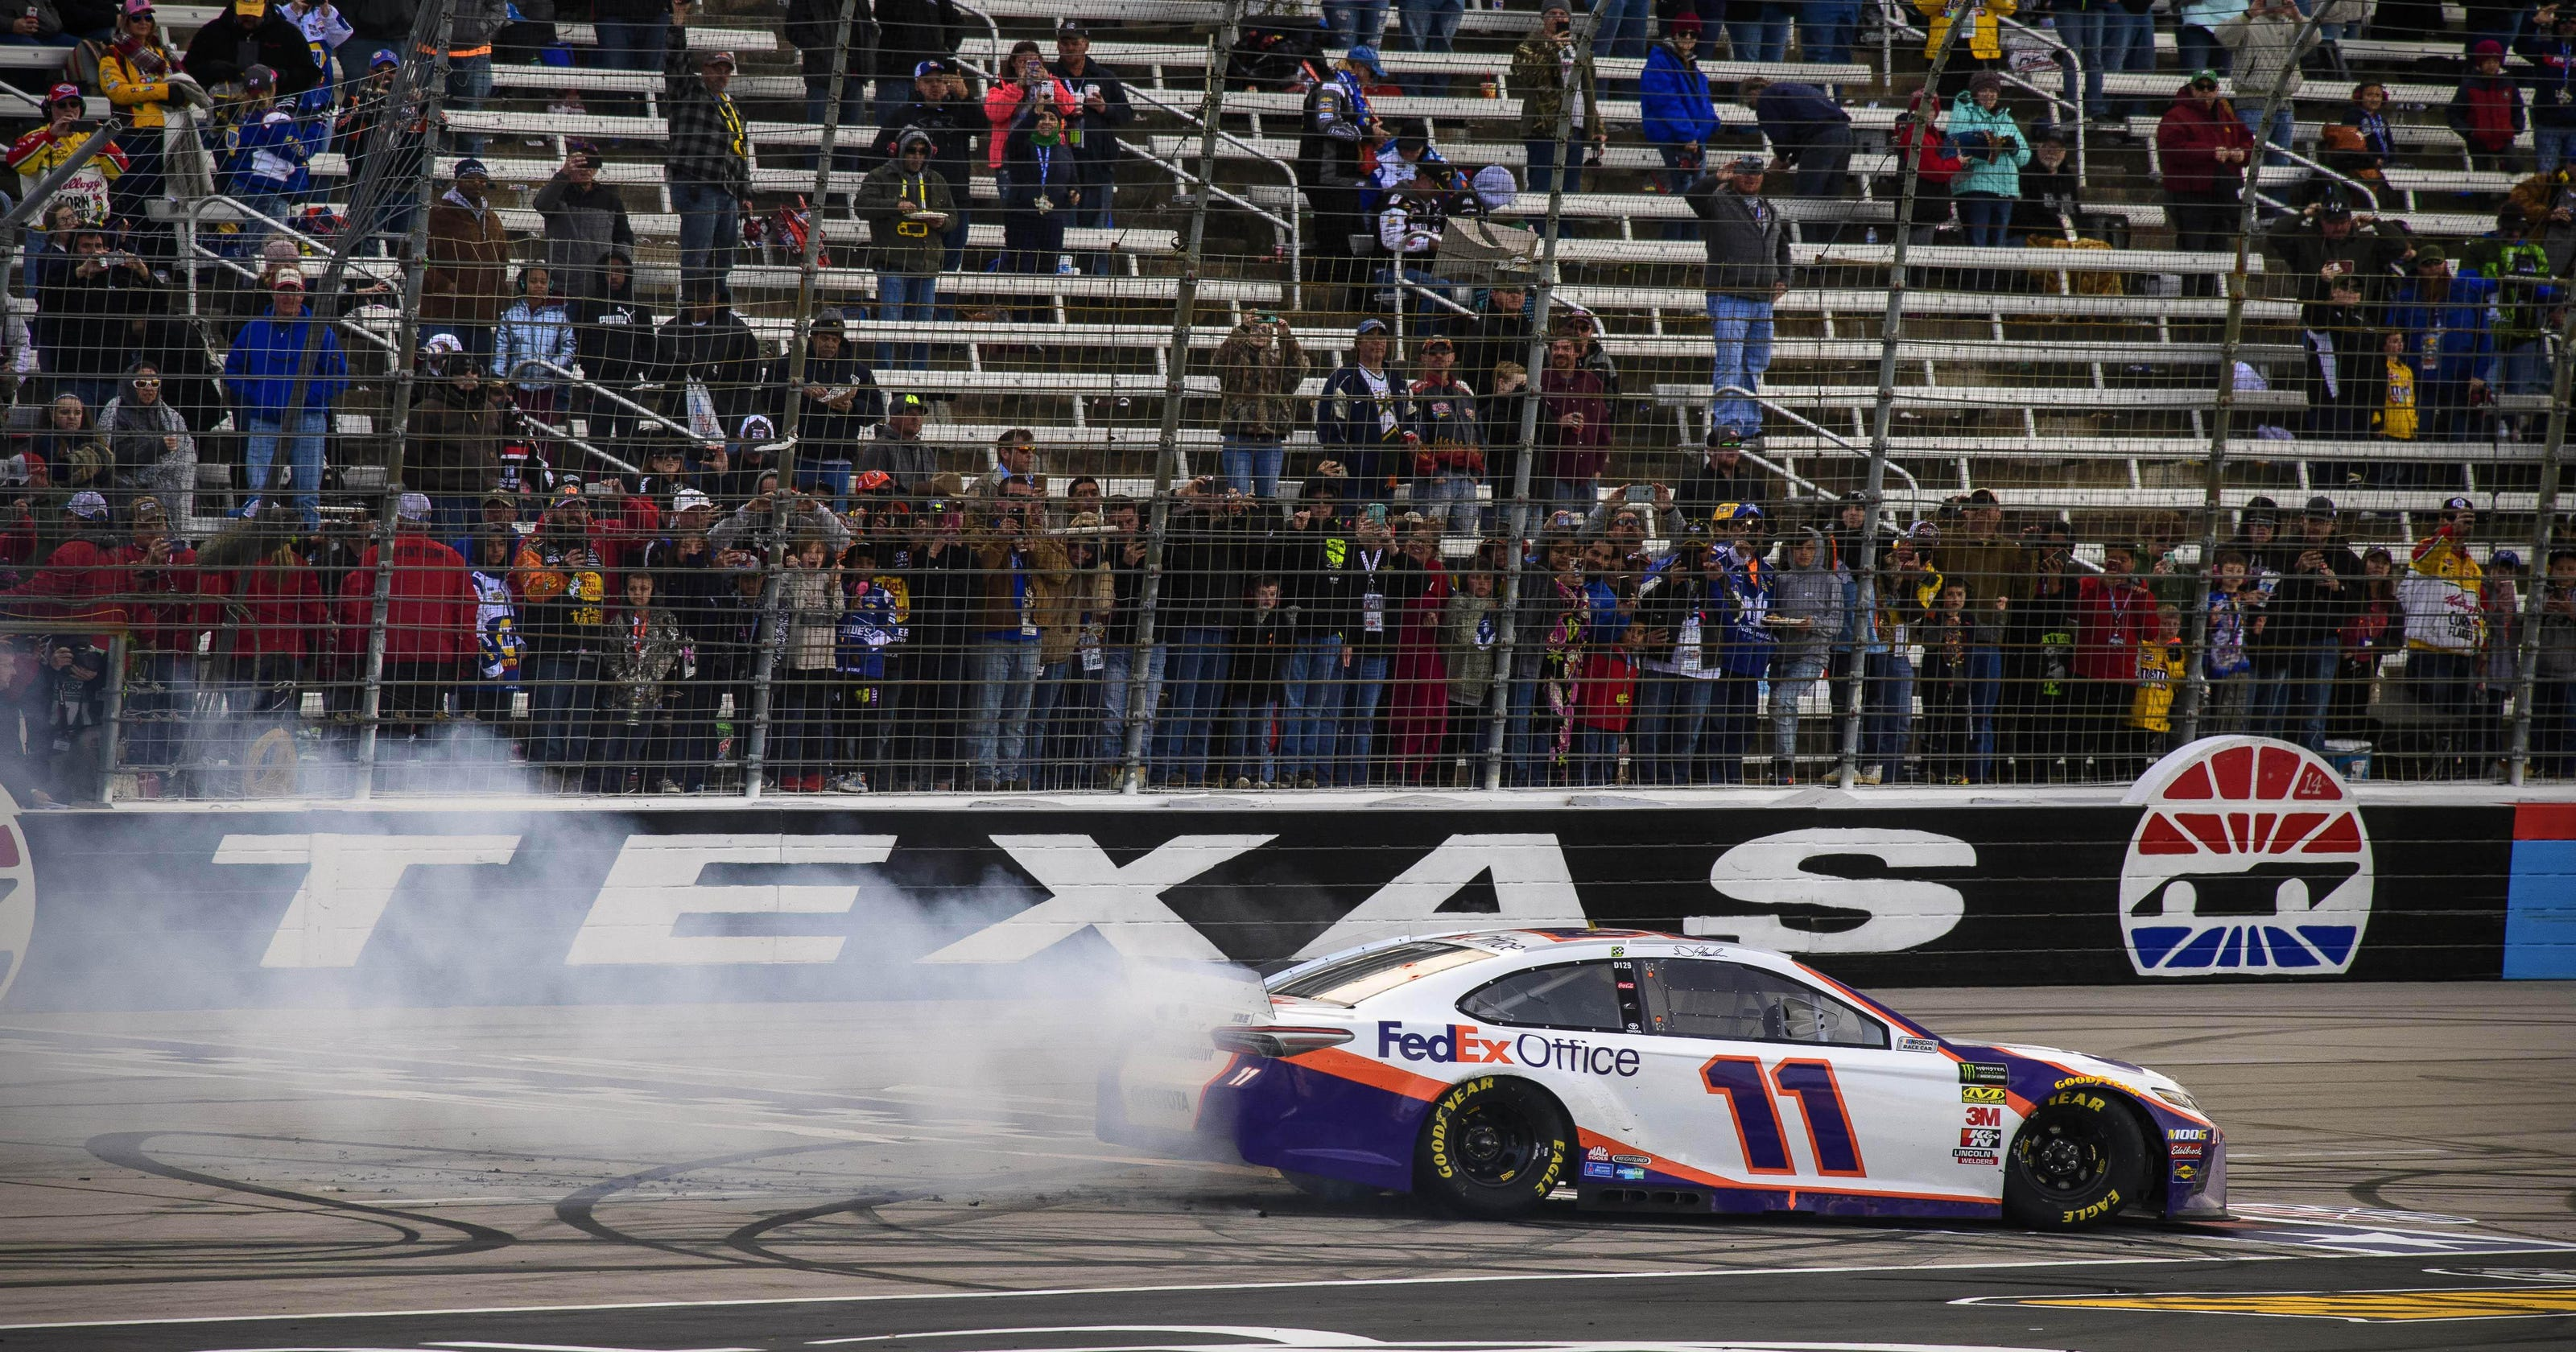 NASCAR Cup Series at Texas: Starting lineup, TV schedule for Sunday's race